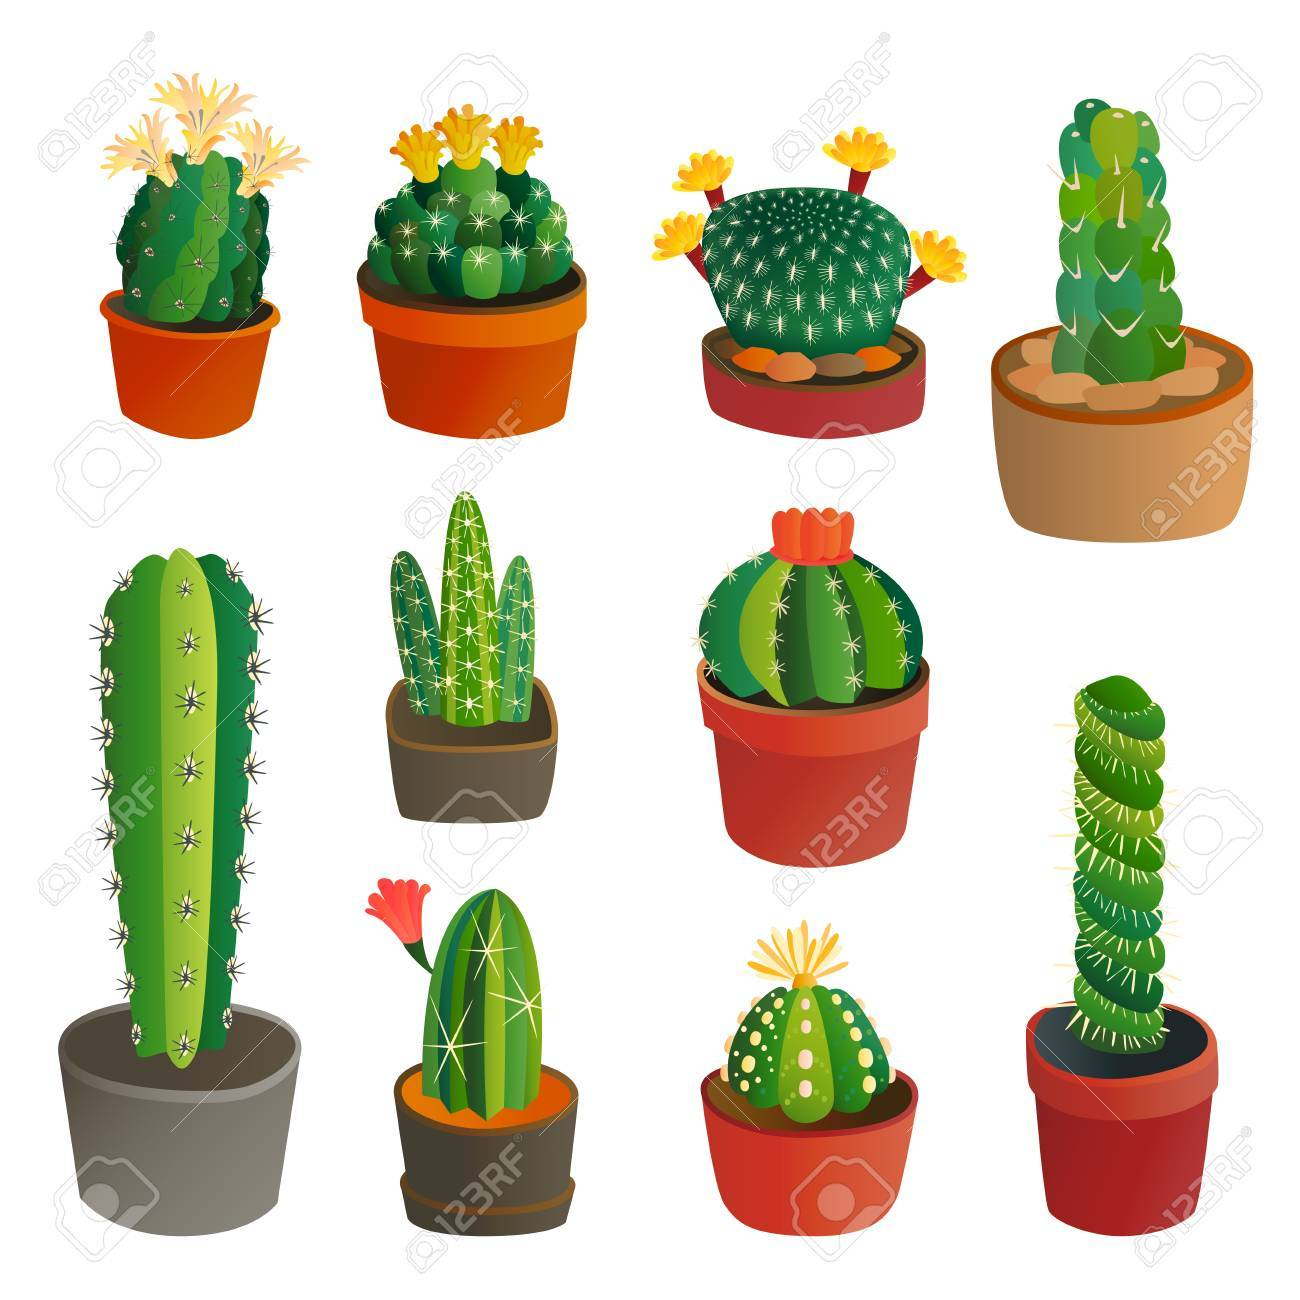 Cactus flat style nature desert flower green cartoon drawing graphic mexican succulent and tropical plant garden